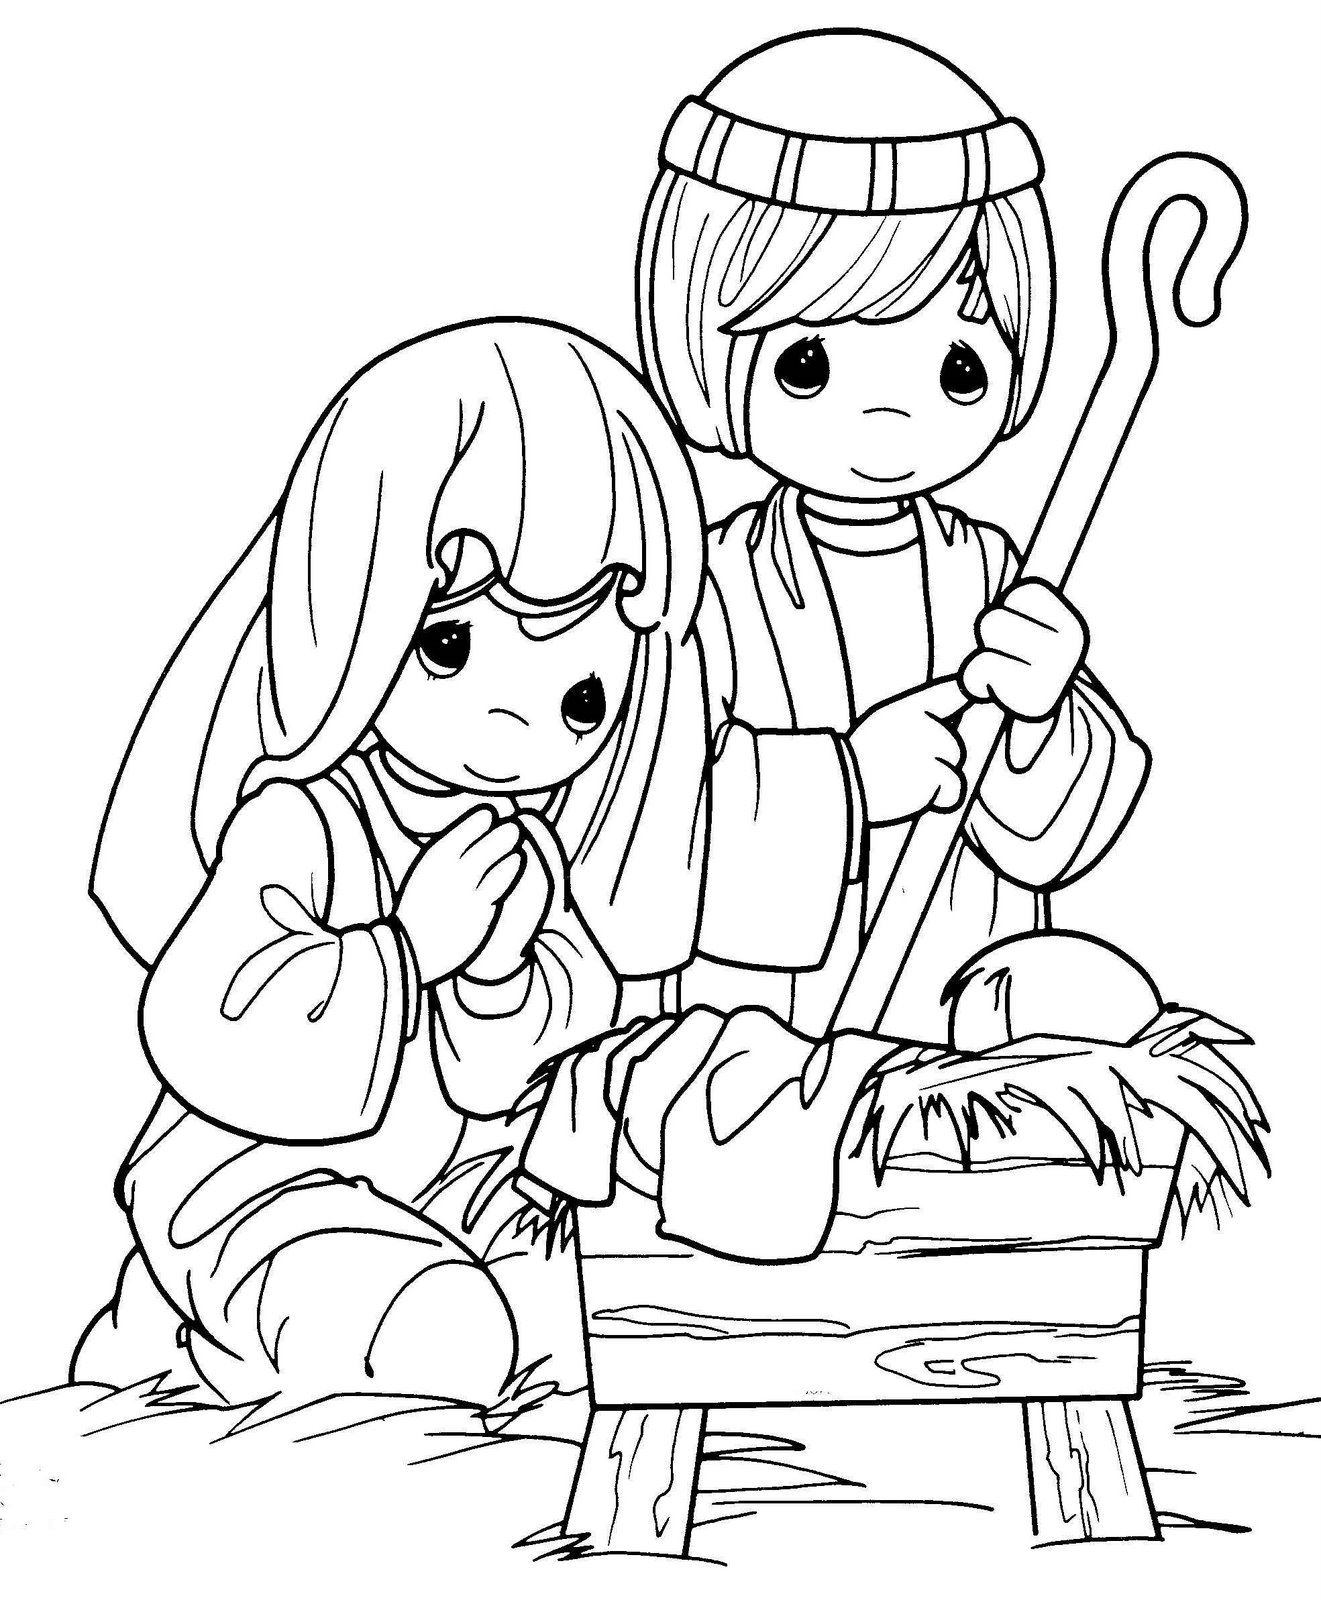 coloring pages baby jesus in manger christmas coloring pages of baby jesus in a manger at manger jesus pages baby coloring in